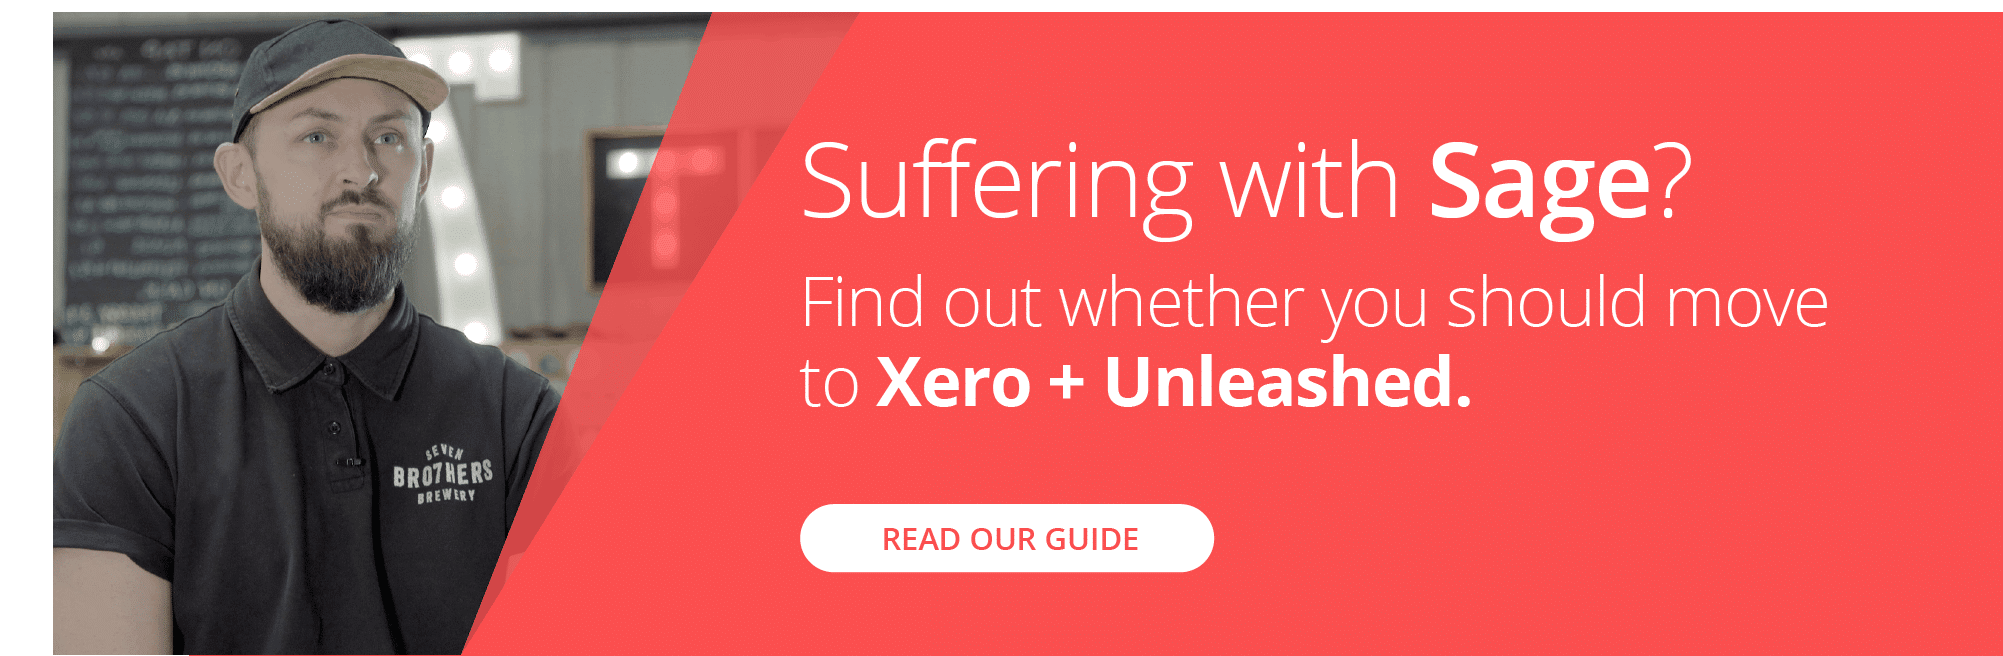 Find out whether you should move from Sage to Zero + Unleashed